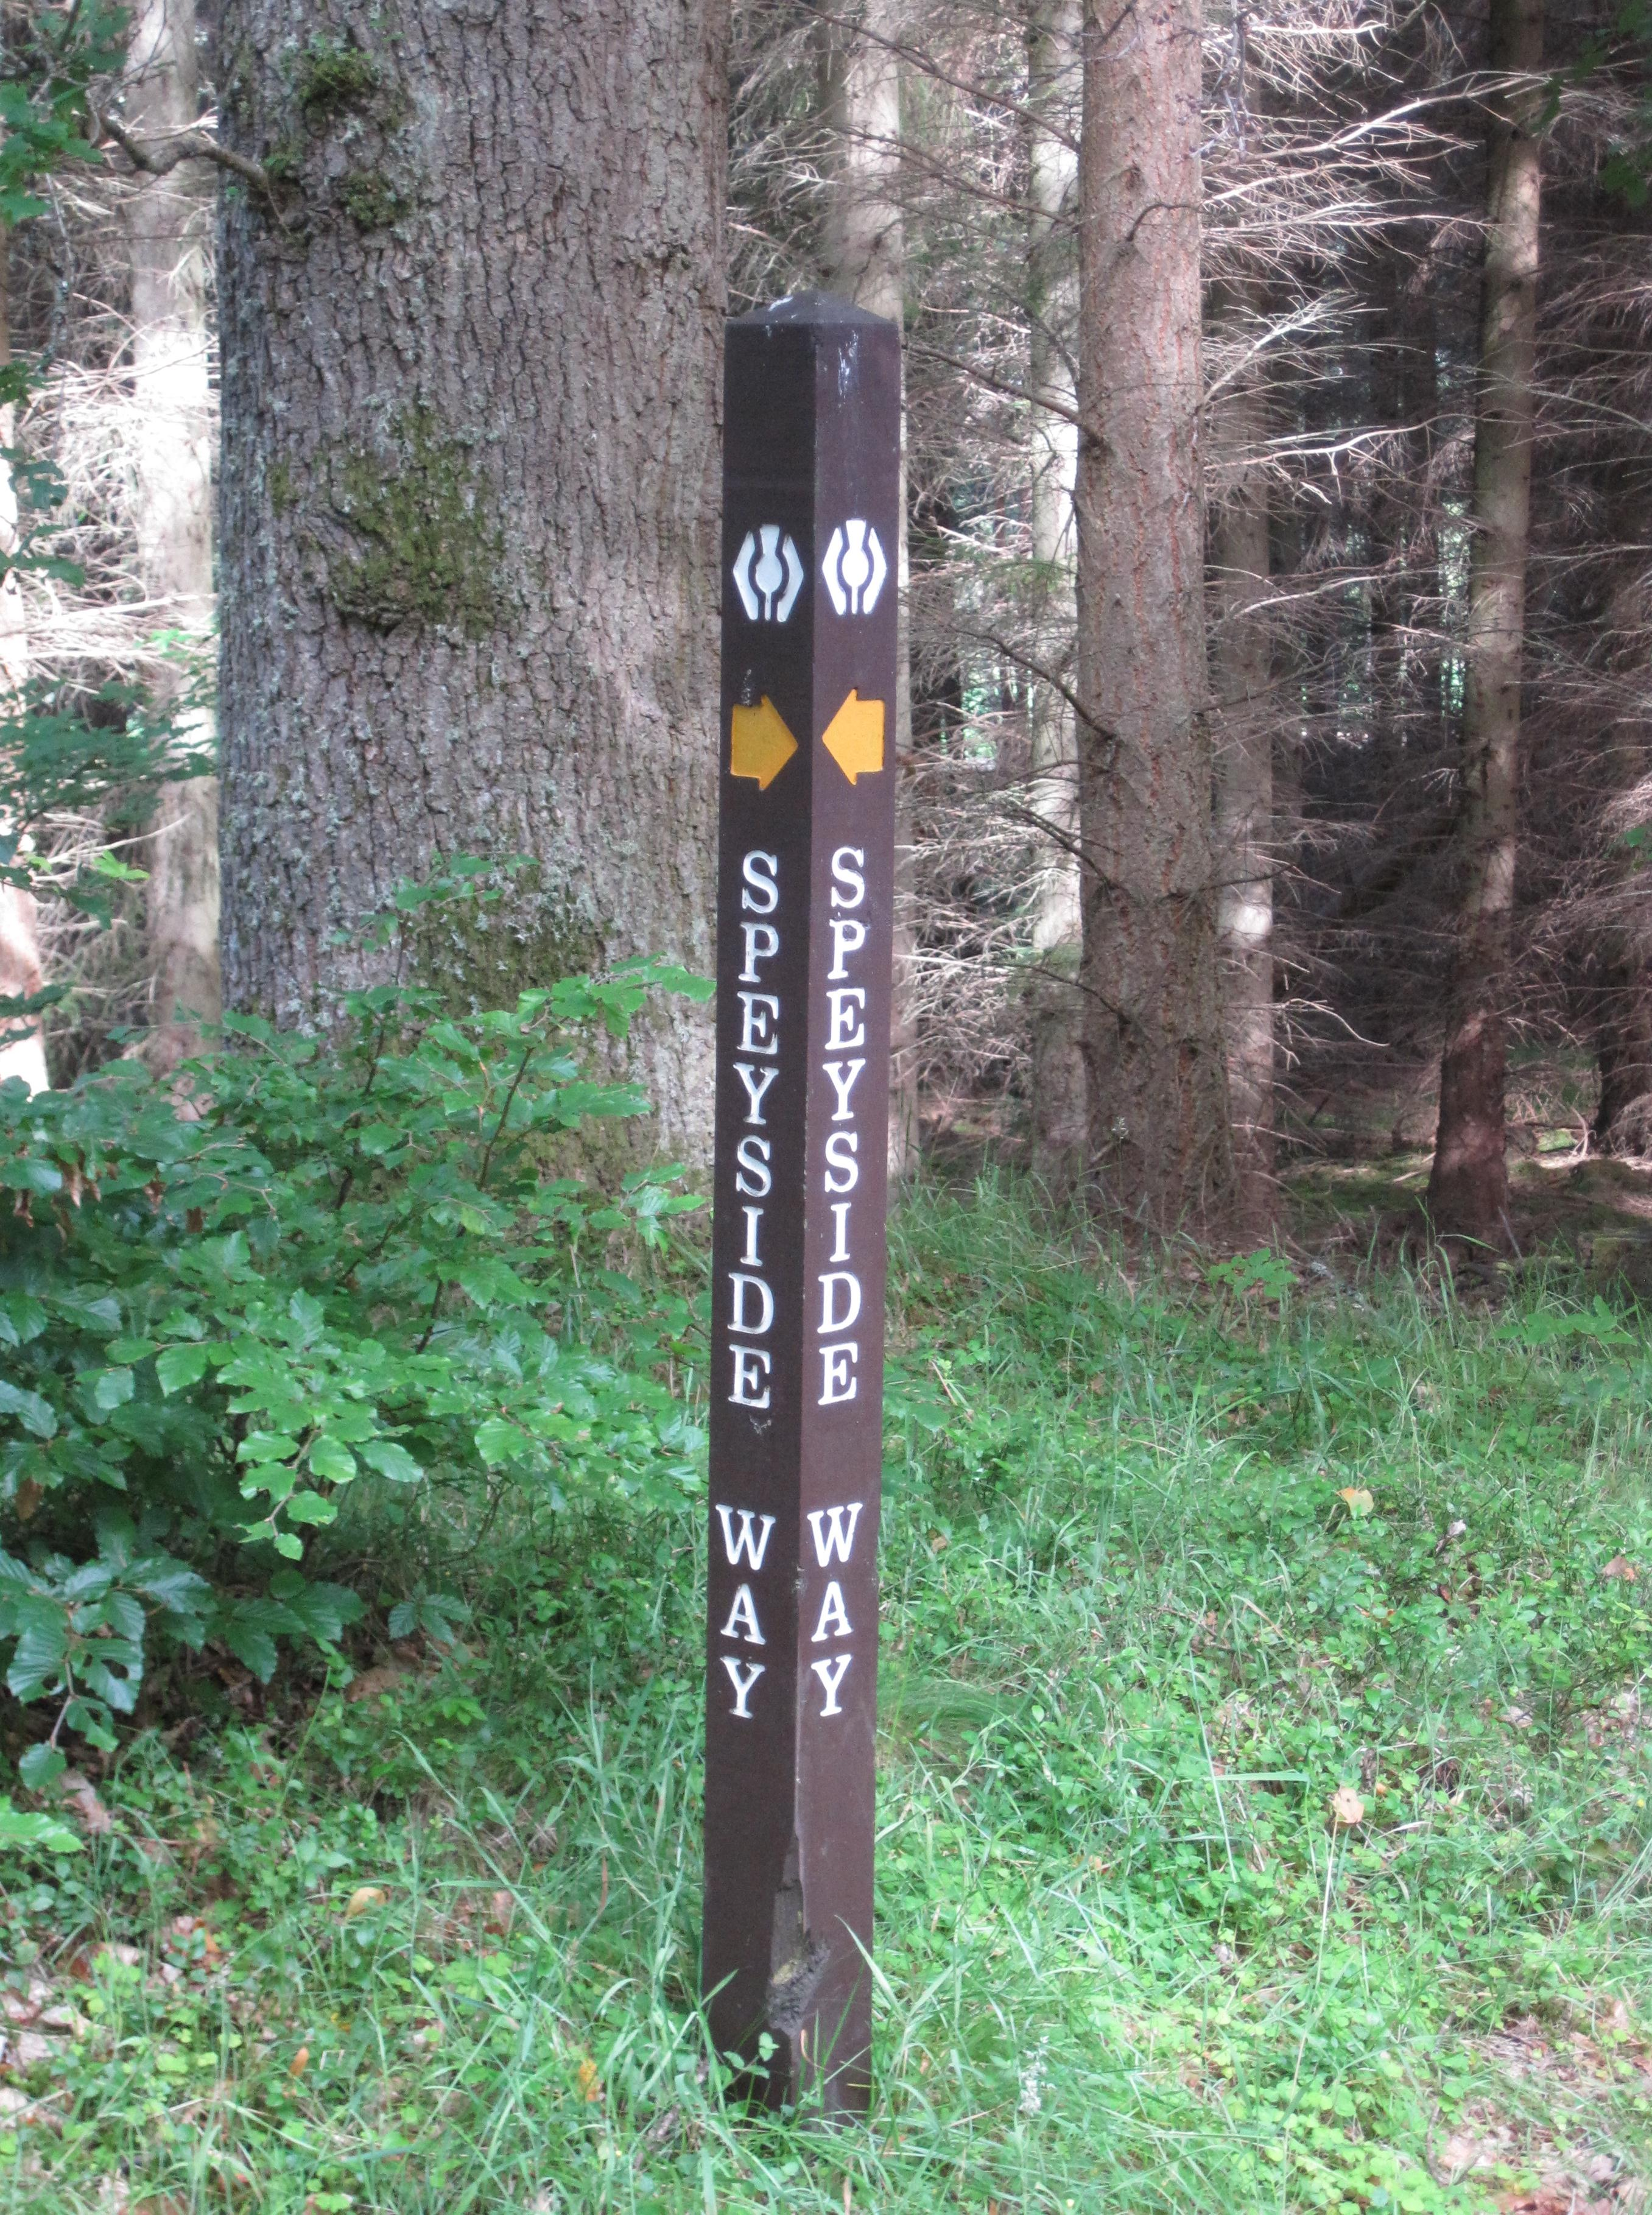 A Speyside Way marker post in the Arndilly Wood